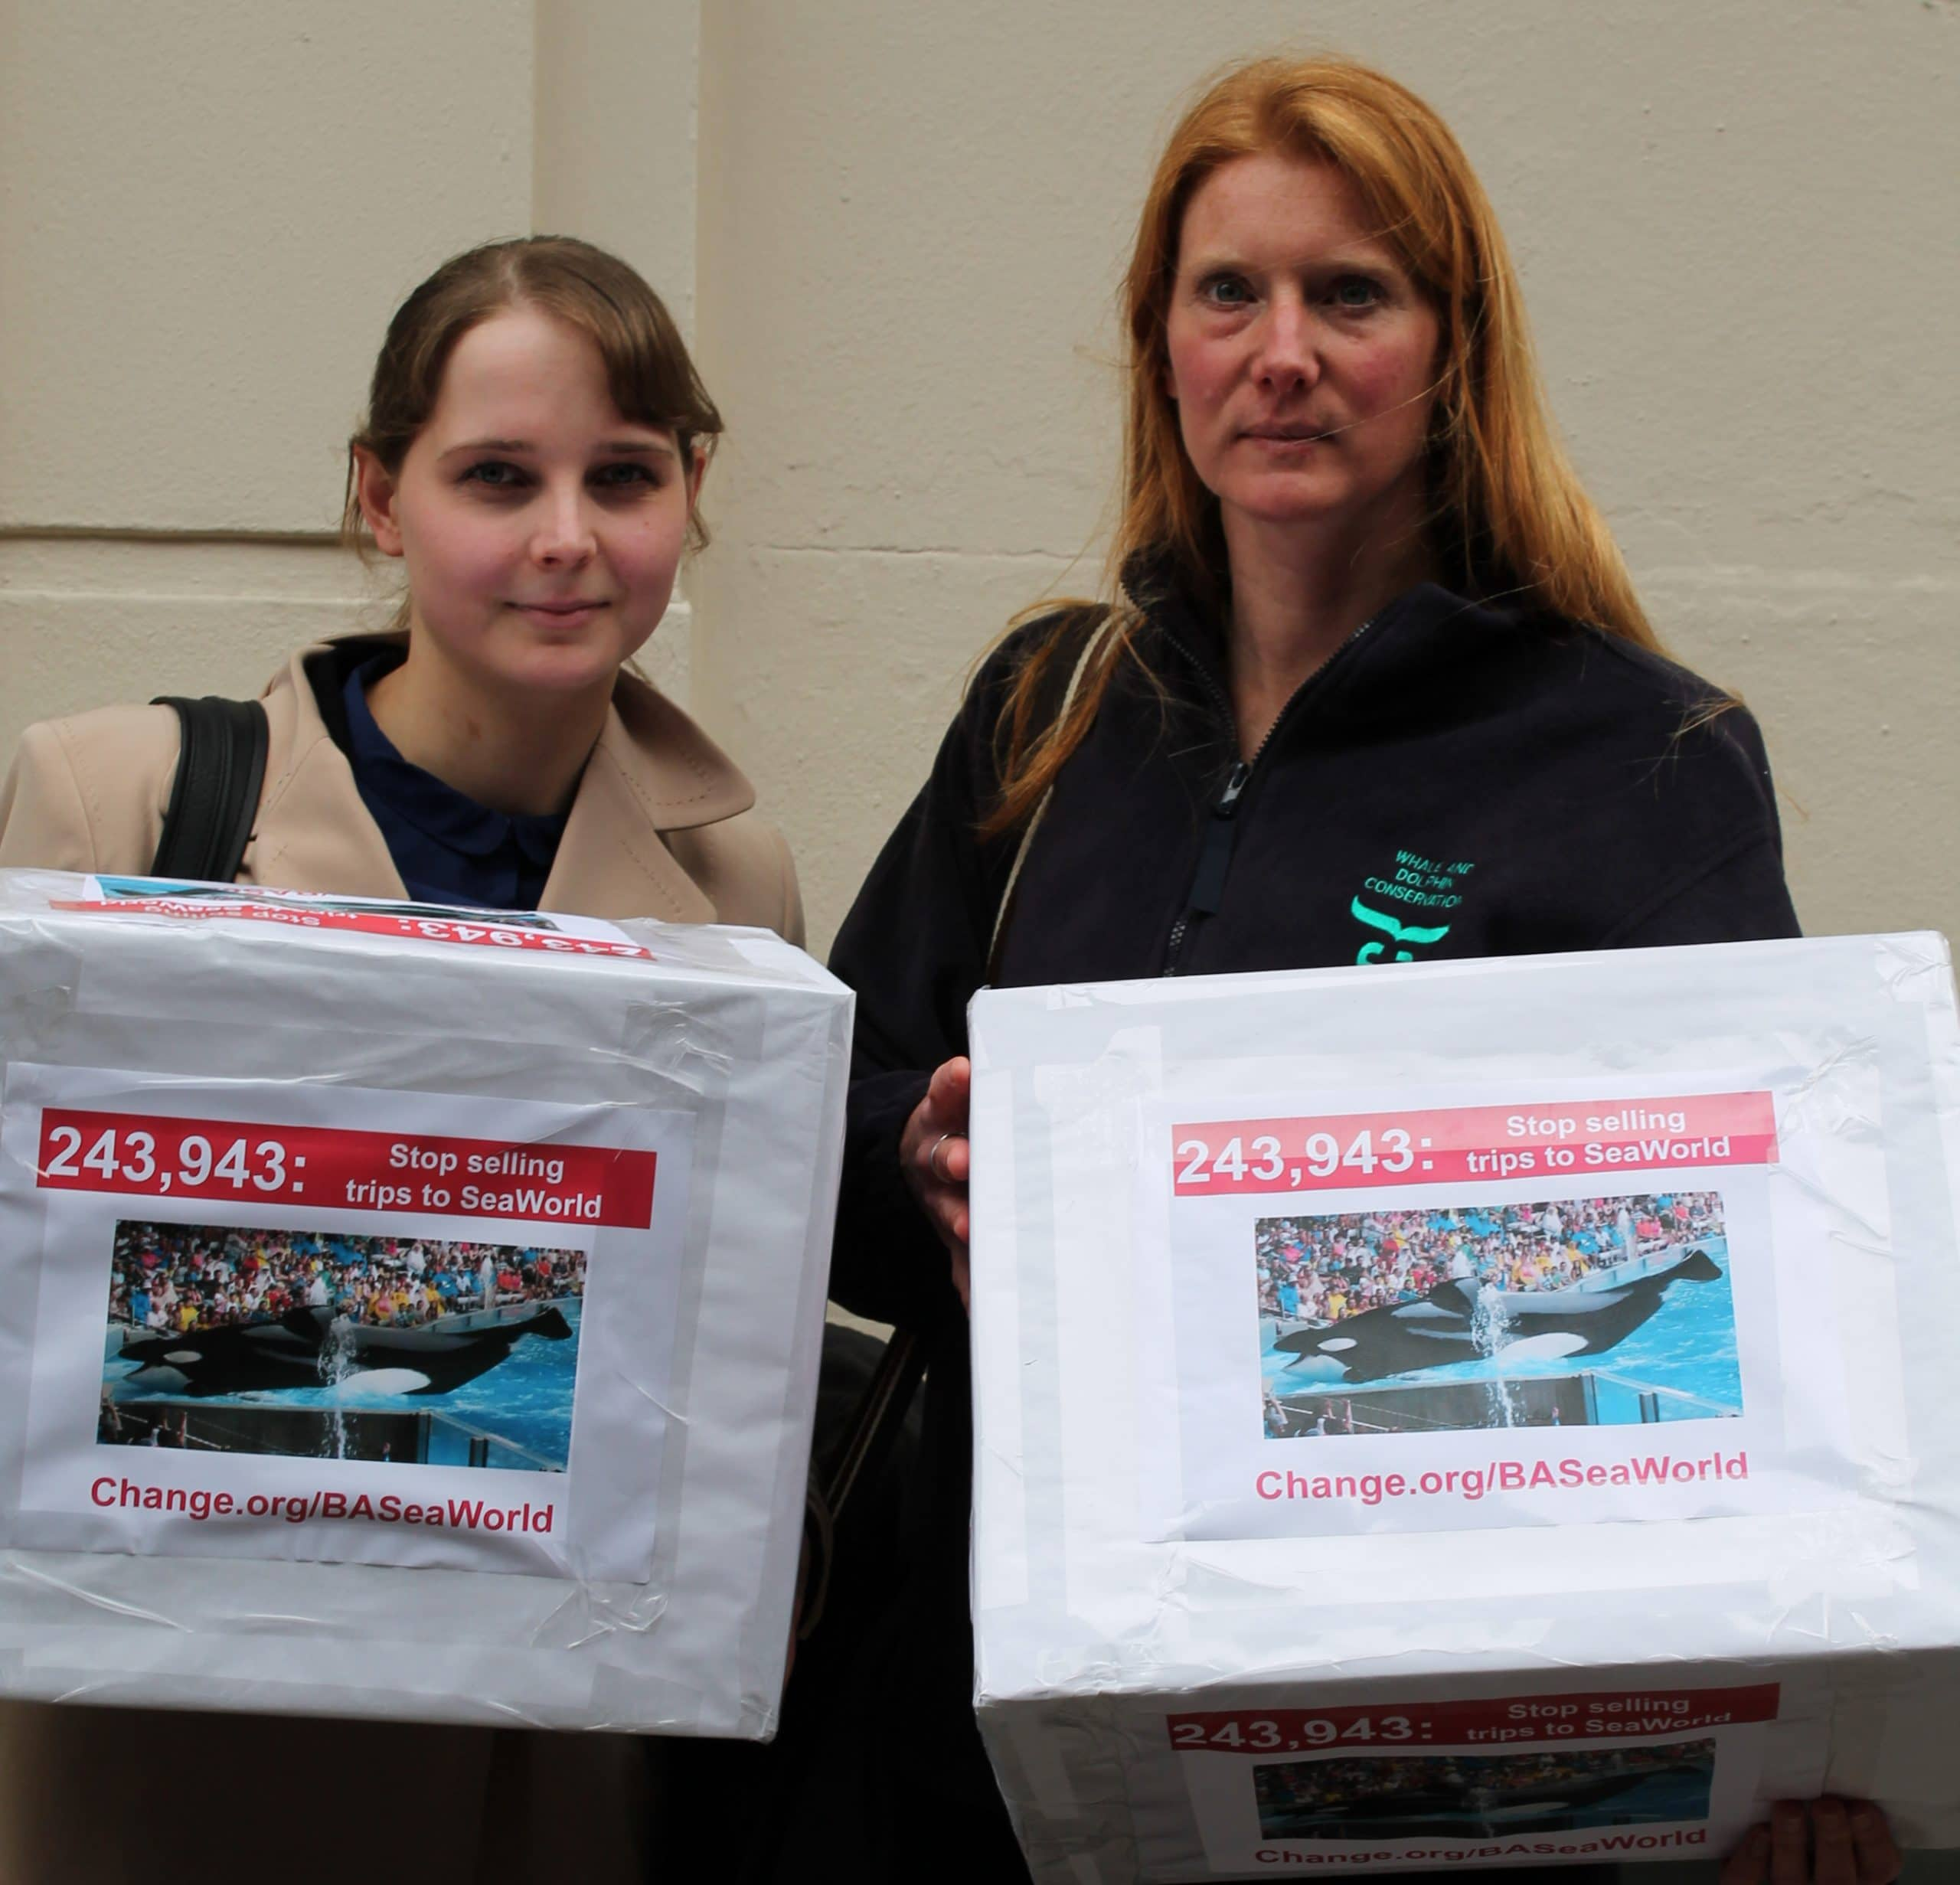 Here I am (left) with Cathy from WDC and our boxes of signatures, just before we went in to the meeting with British Airways.